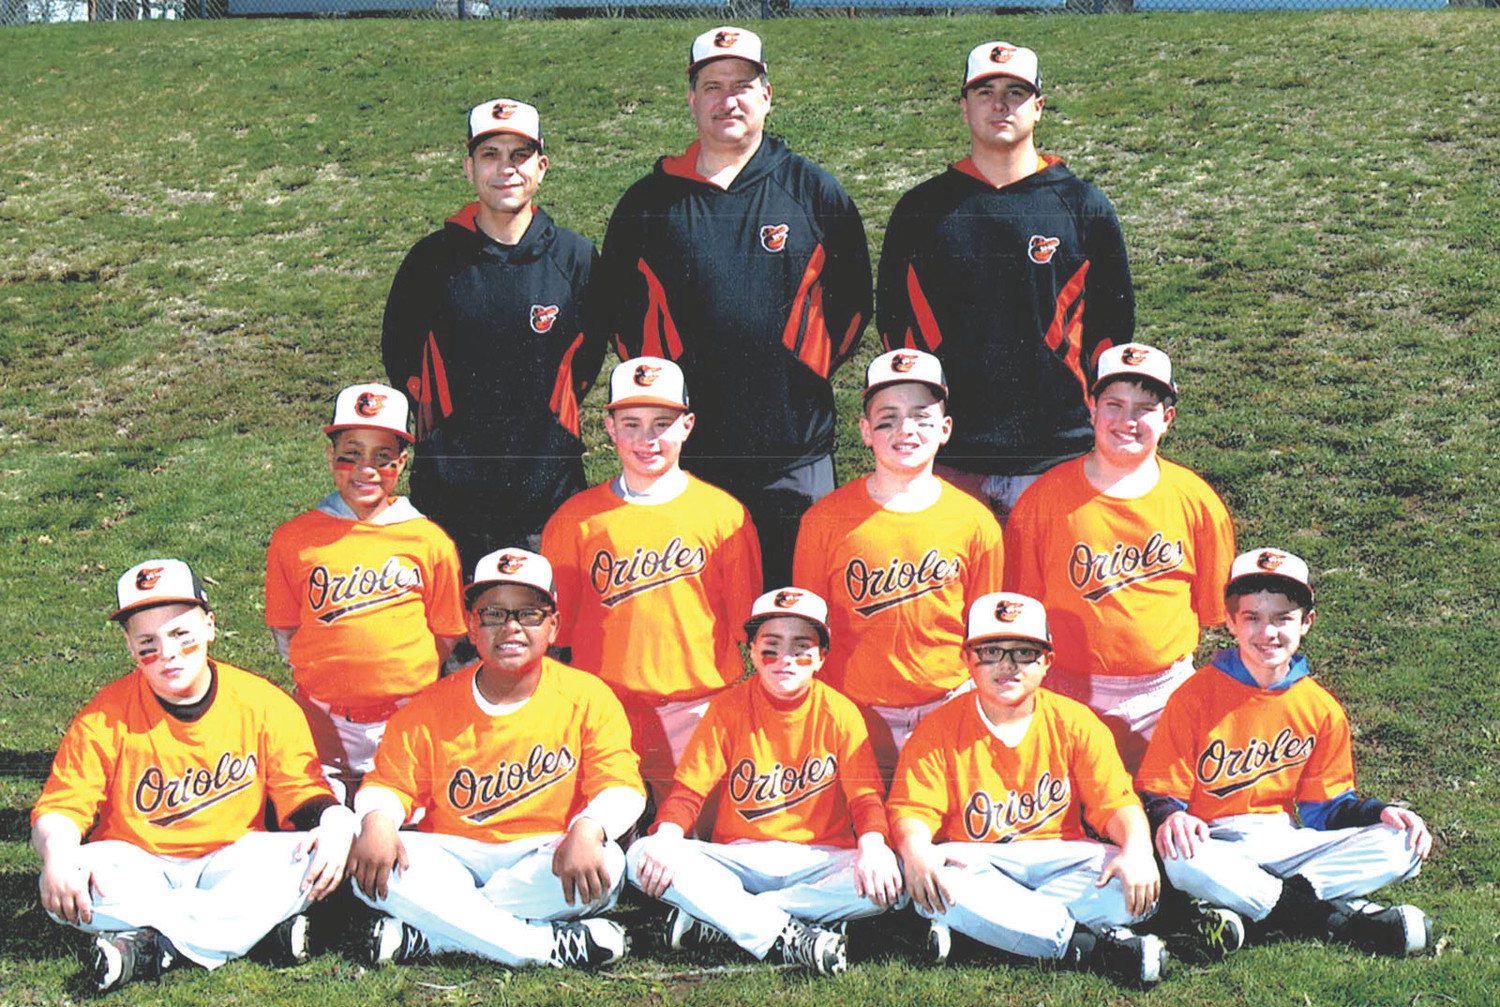 OUTSTANDING O'S: The Lions Club-sponsored Orioles recently staked claim to the Johnston Little League's 2018 Major Division Championship with a sparkling record of 17-3. The team includes: Kevin Biscelli, Christopher Civetti, Anthony DiIorio, Dylan Guernon, Dillon So, Dan Paris, Preston Marchesseault, Antonio Morales and Mason Caramante. Missing from photo are Tyler Holton and Christian Ferranti. The O's were managed by Robert Civetti and coached by Raphael Diaz and Anthony DiIorio. (Submitted photo)